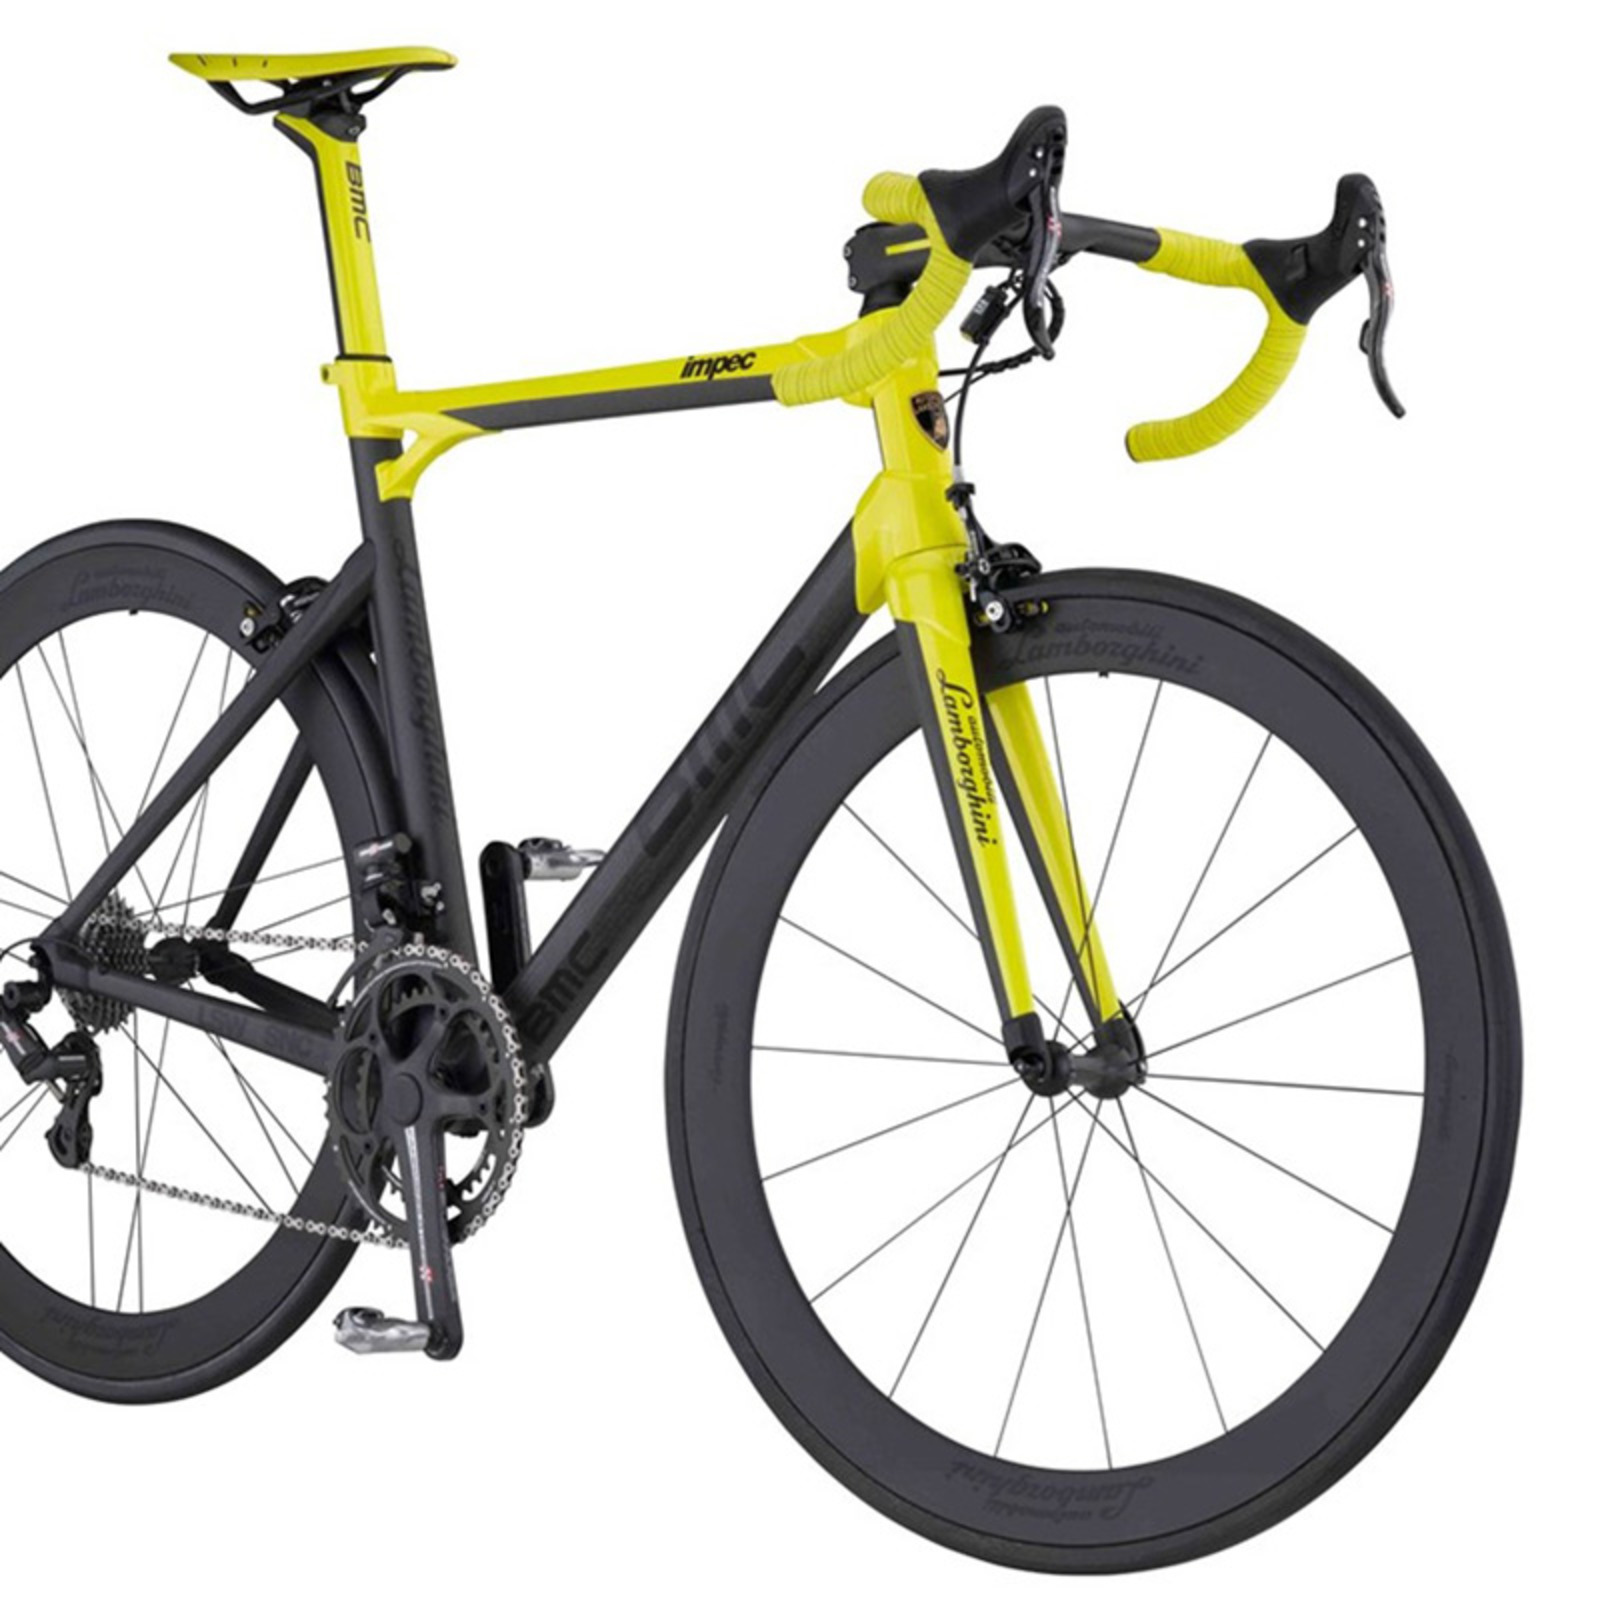 frames review bike img product the road cipollini first category lamborghini one ride bikeradar gear